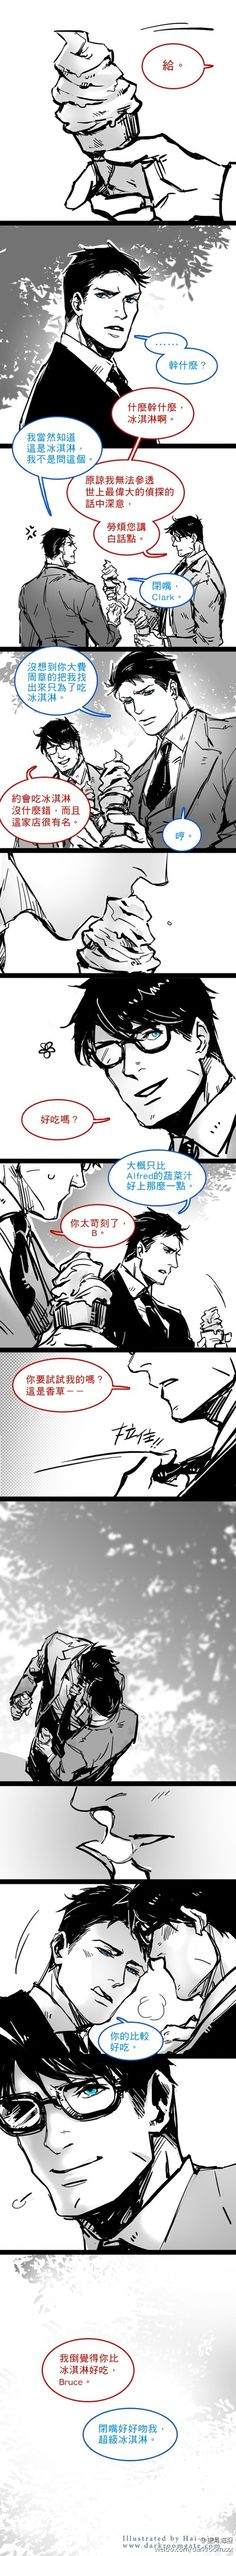 Superbat (i do not understand what they're saying, but it's soooooo CUTE❤️❤️❤️